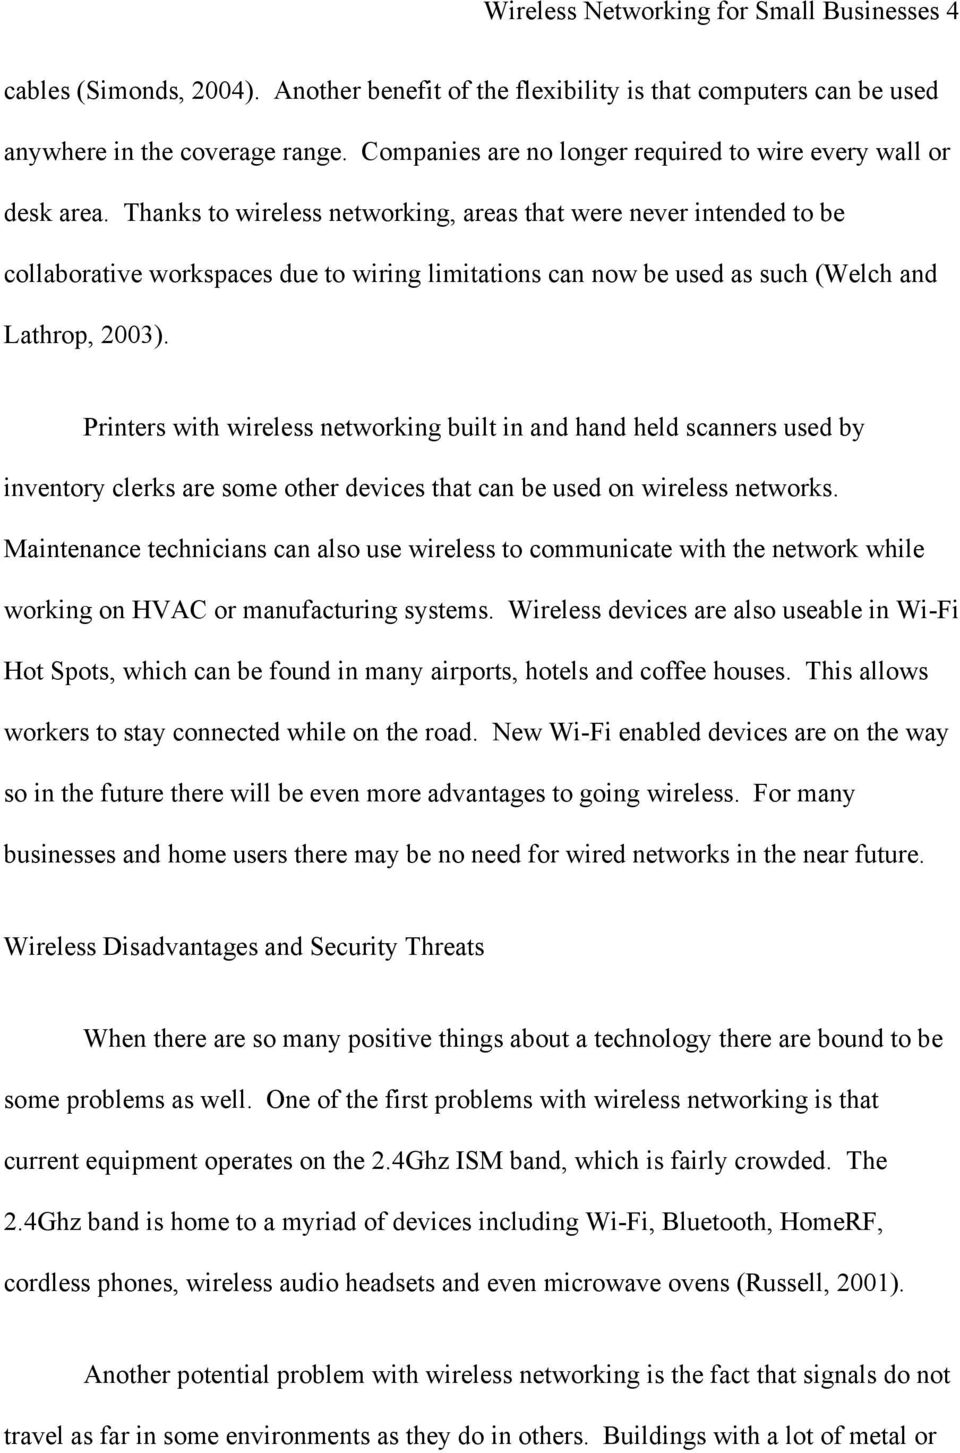 Thanks to wireless networking, areas that were never intended to be collaborative workspaces due to wiring limitations can now be used as such (Welch and Lathrop, 2003).